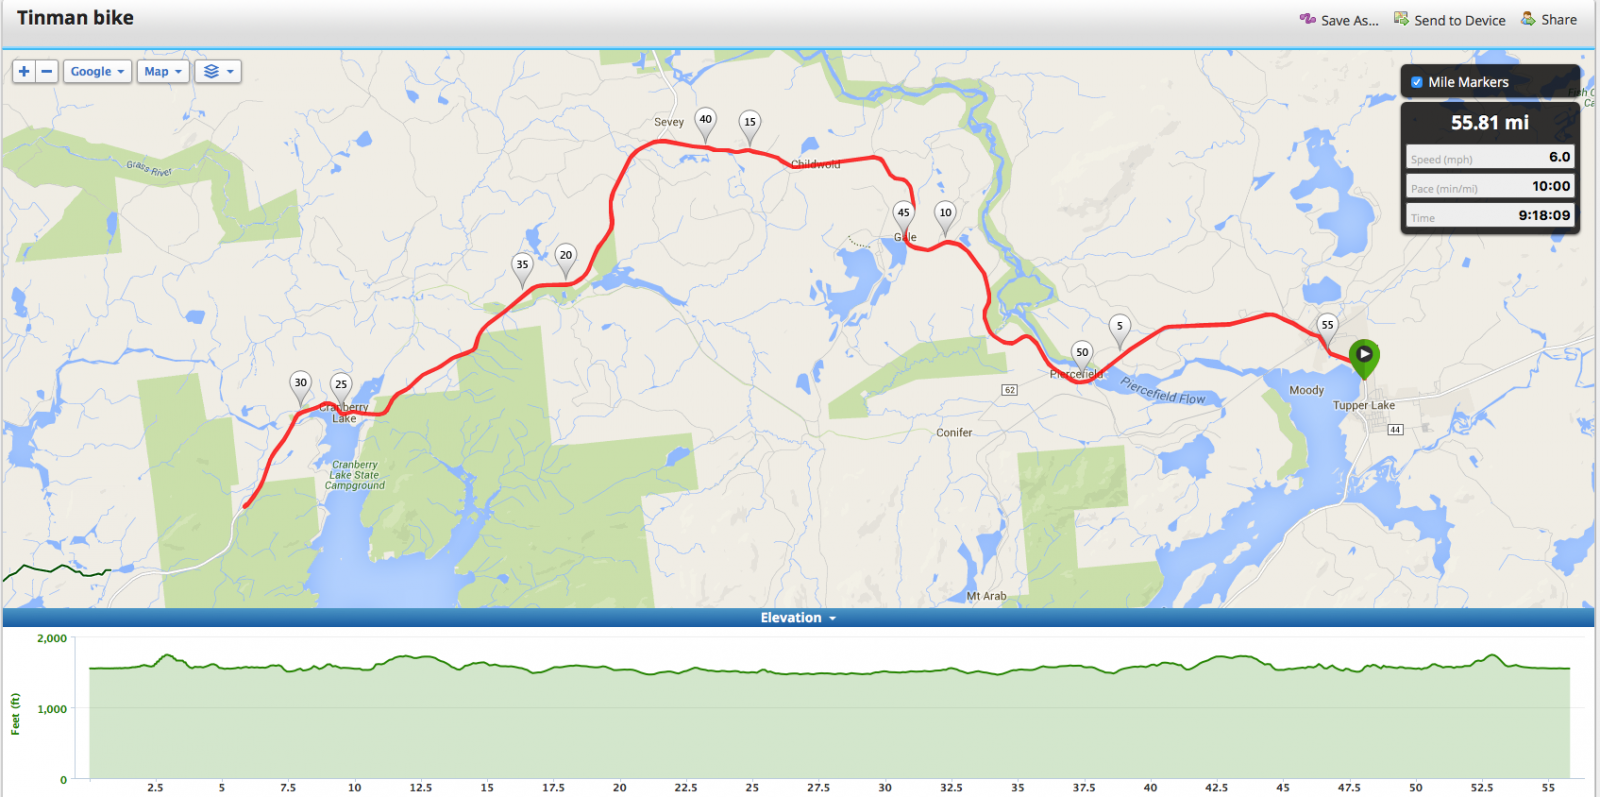 Tupper Lake Tinman Bike Course